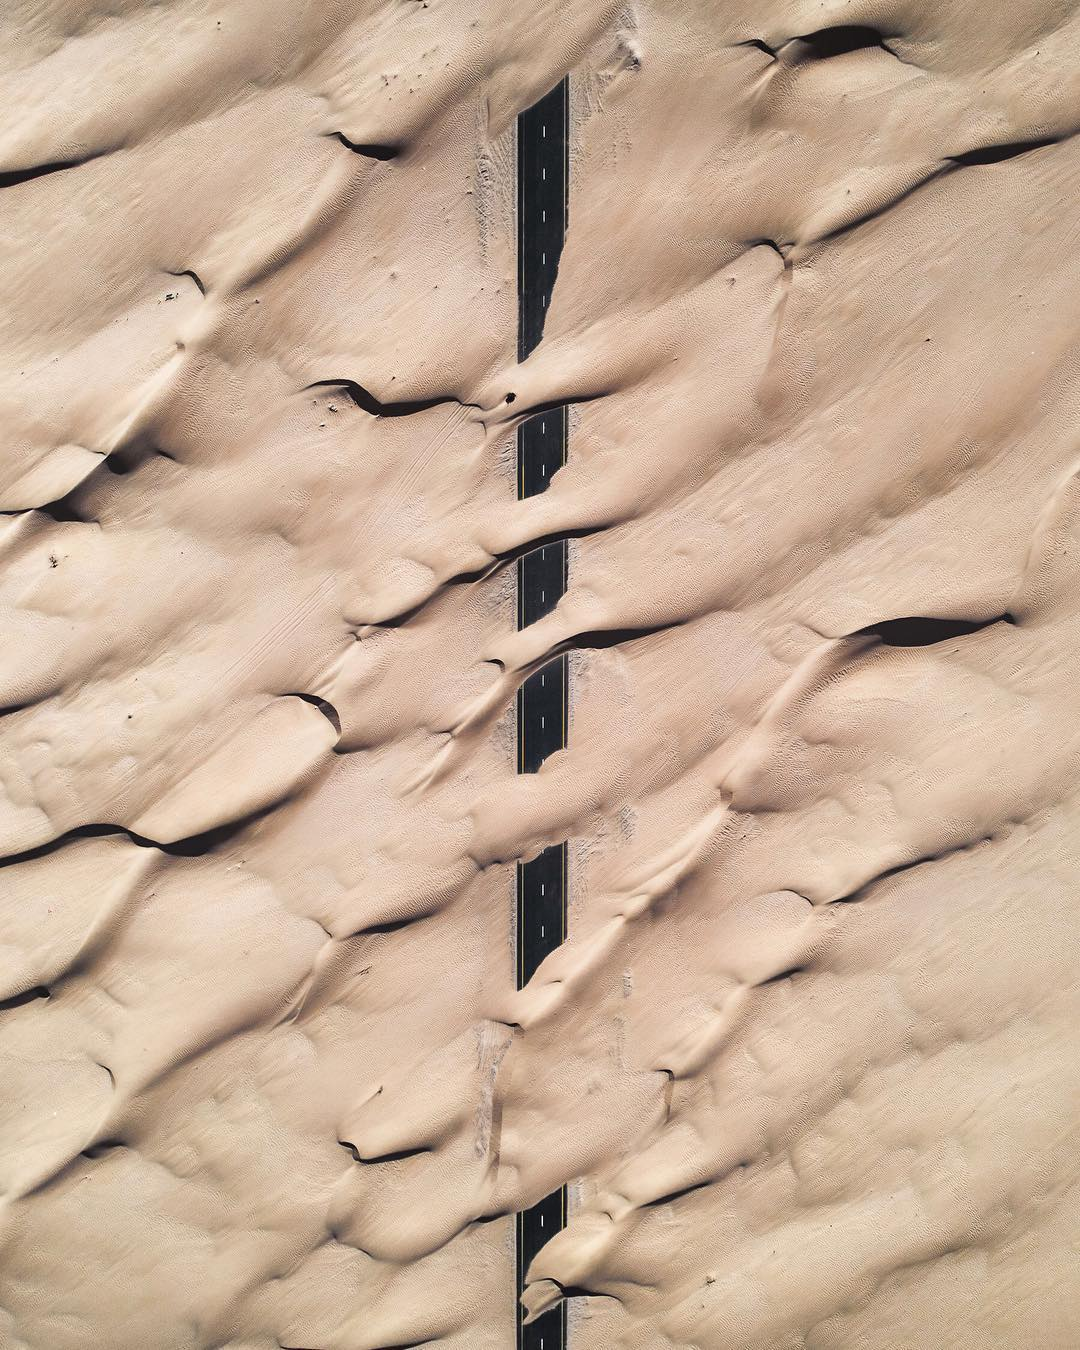 Manmade Patterns and Uncanny Shadows Photographed From Above by JP and Mike Andrews